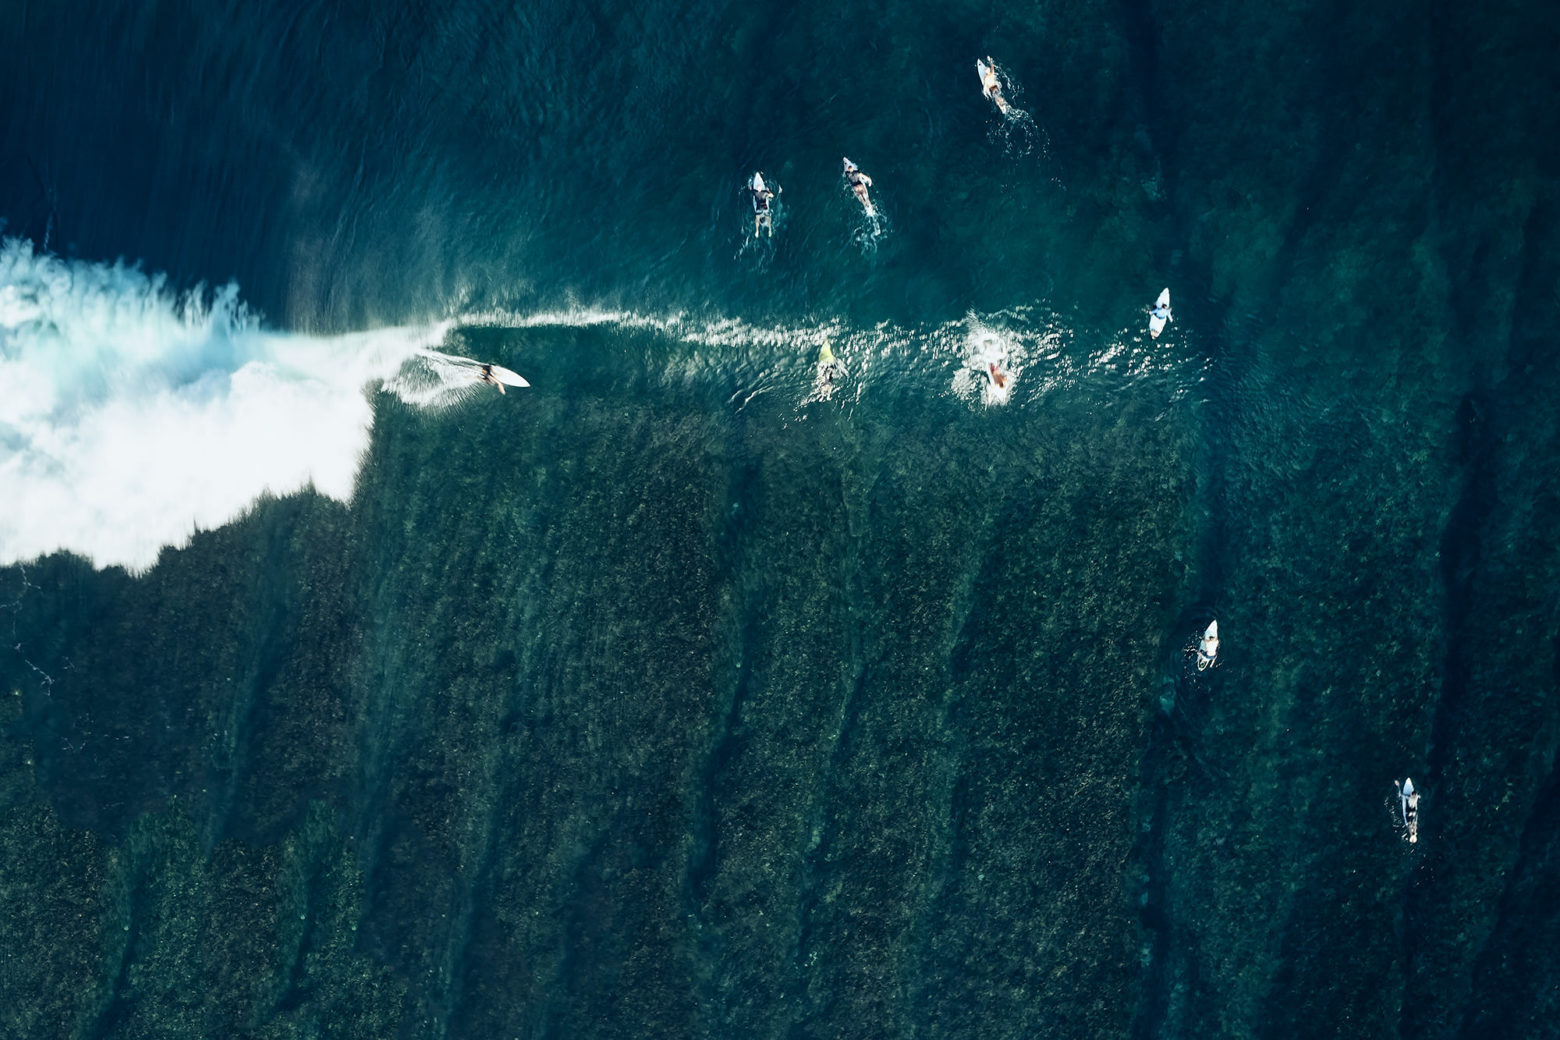 Thunders from above, Mentawais Islands